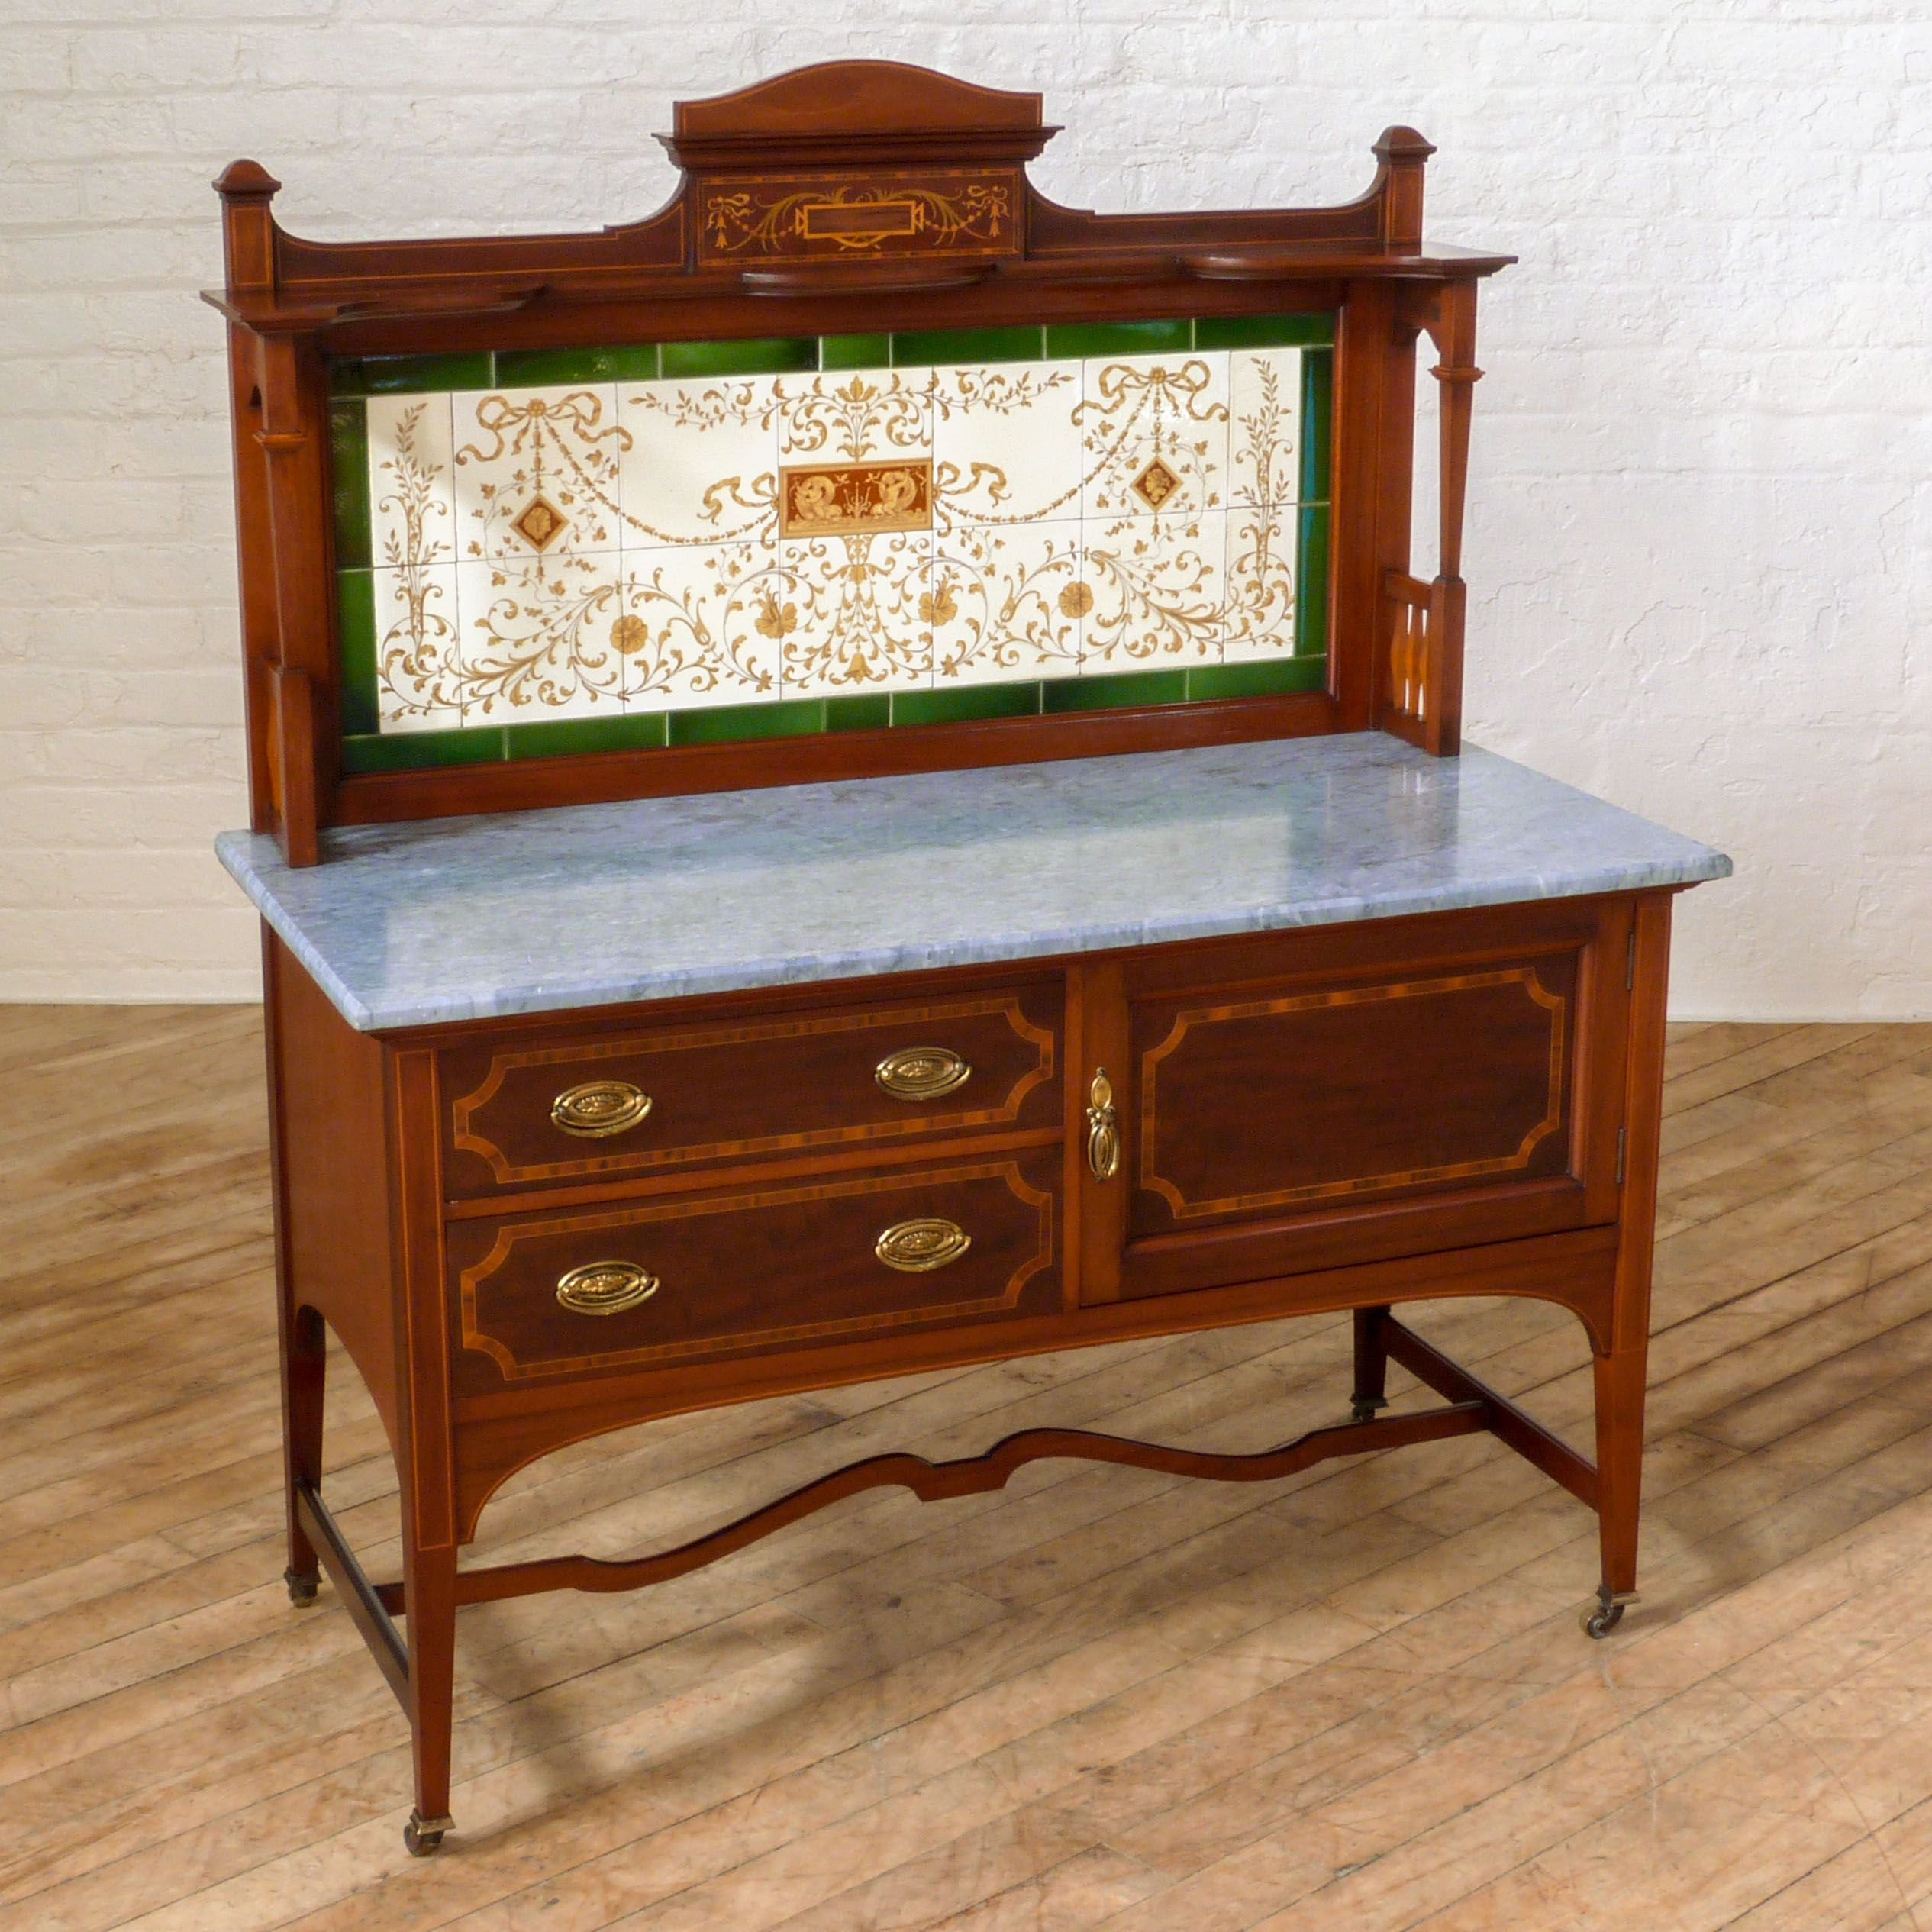 An edwardian mahogany washstand by reputed makers